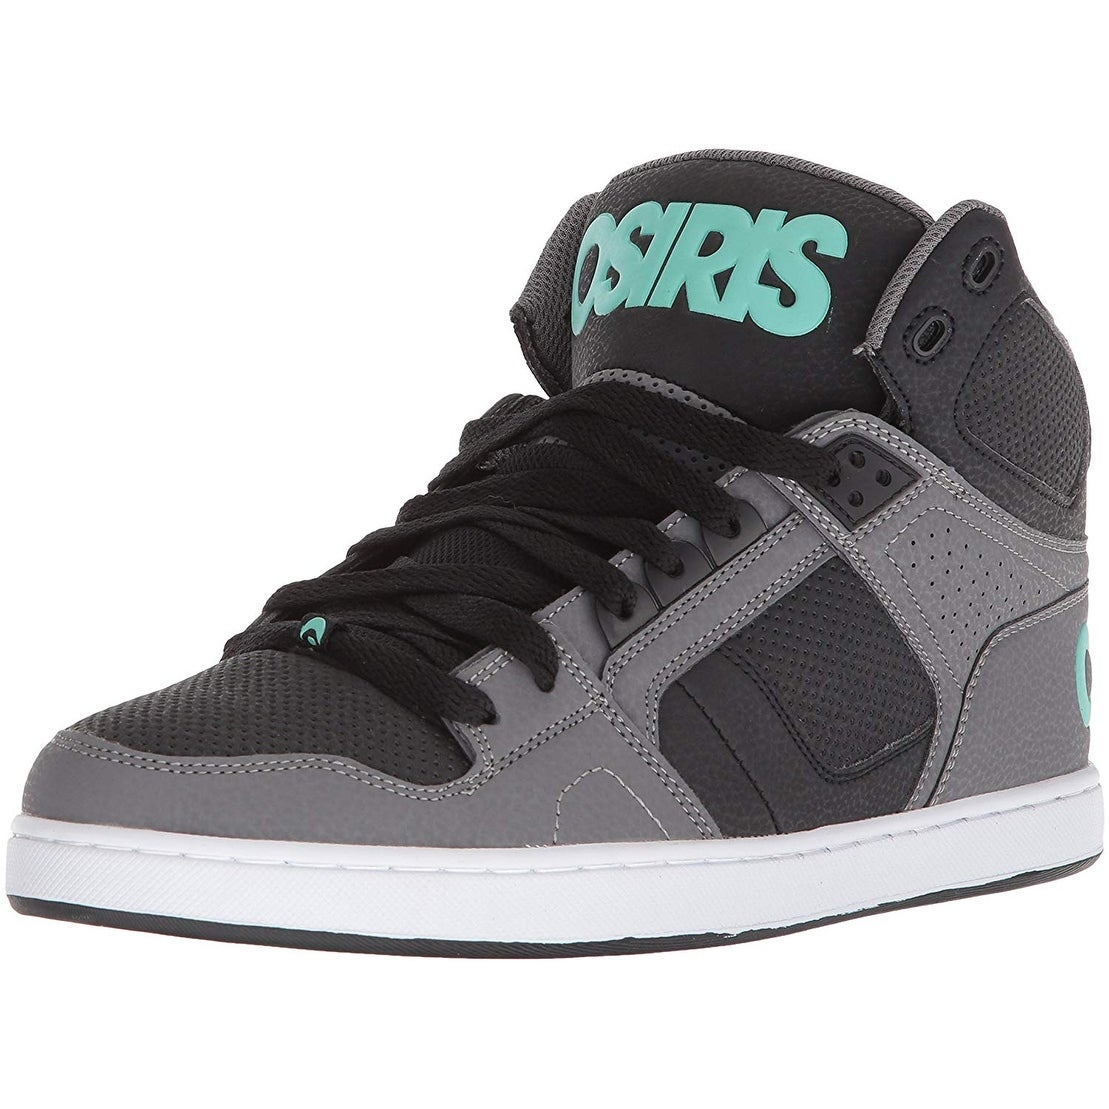 4580f406612 Shop Osiris Men's NYC 83 CLK Skate Shoe - Free Shipping On Orders Over $45  - Overstock - 22811174